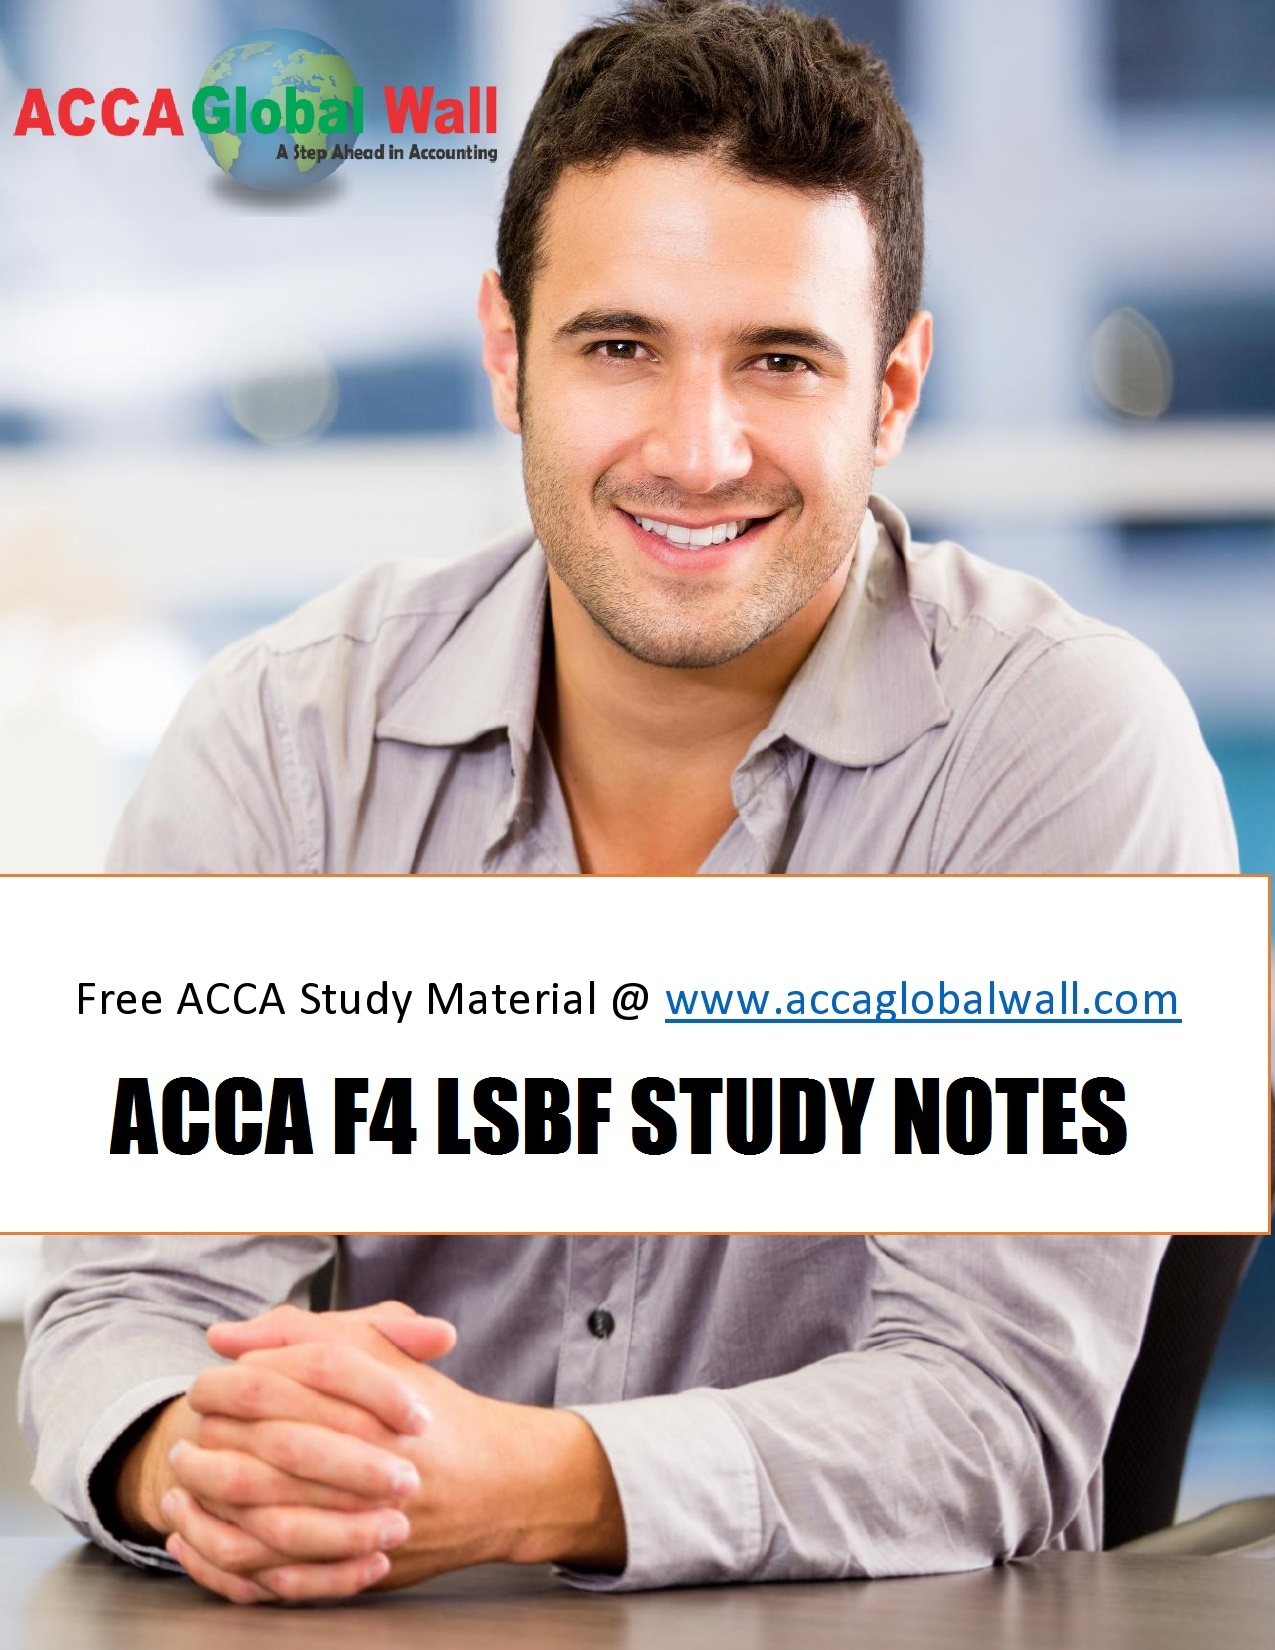 ACCA F4 LSBF STUDY MATERIAL